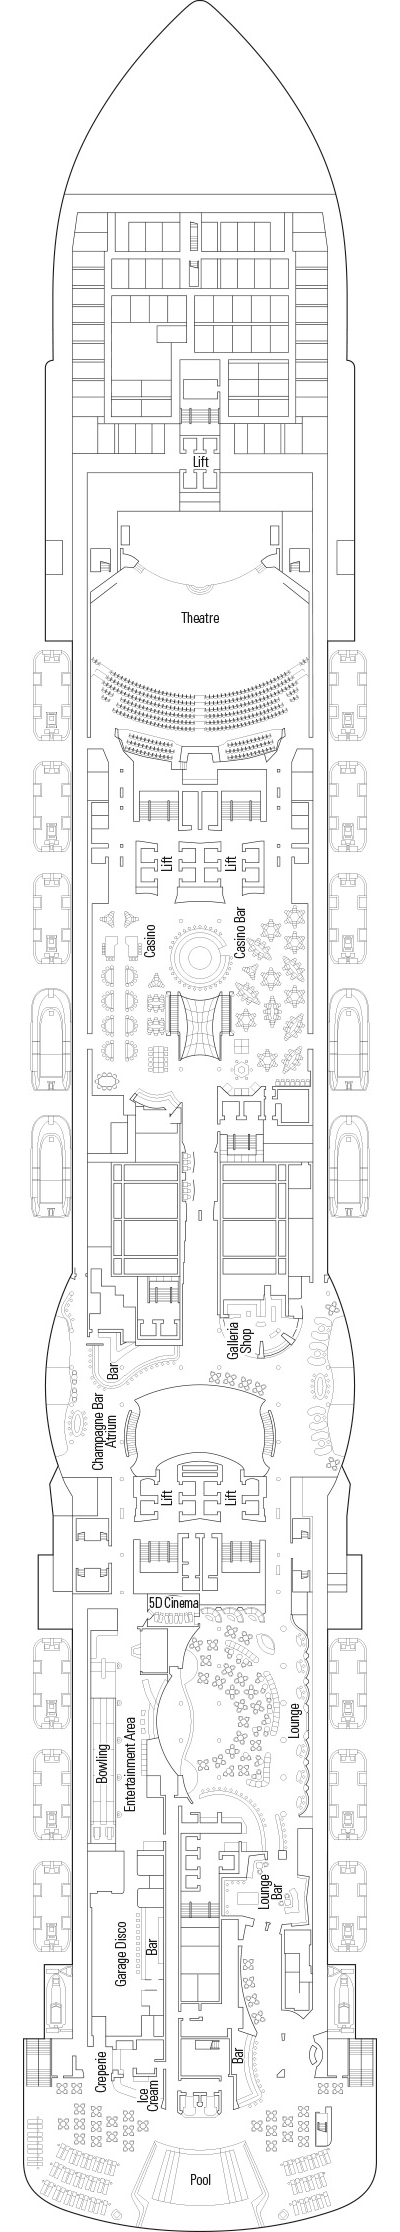 MSC Seaview Deck 7 layout